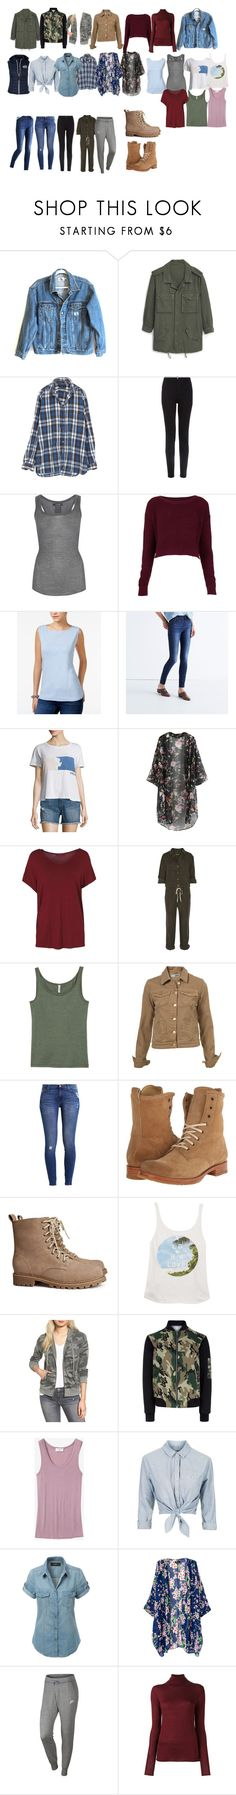 """Alicia Clark season 2 essentials - ftwd / fear the walking dead"" by shadyannon ❤ liked on Polyvore featuring Calvin Klein Jeans, MANGO, New Look, Isabel Marant, Topshop, Karen Scott, Madewell, Current/Elliott, Enza Costa and H&M"